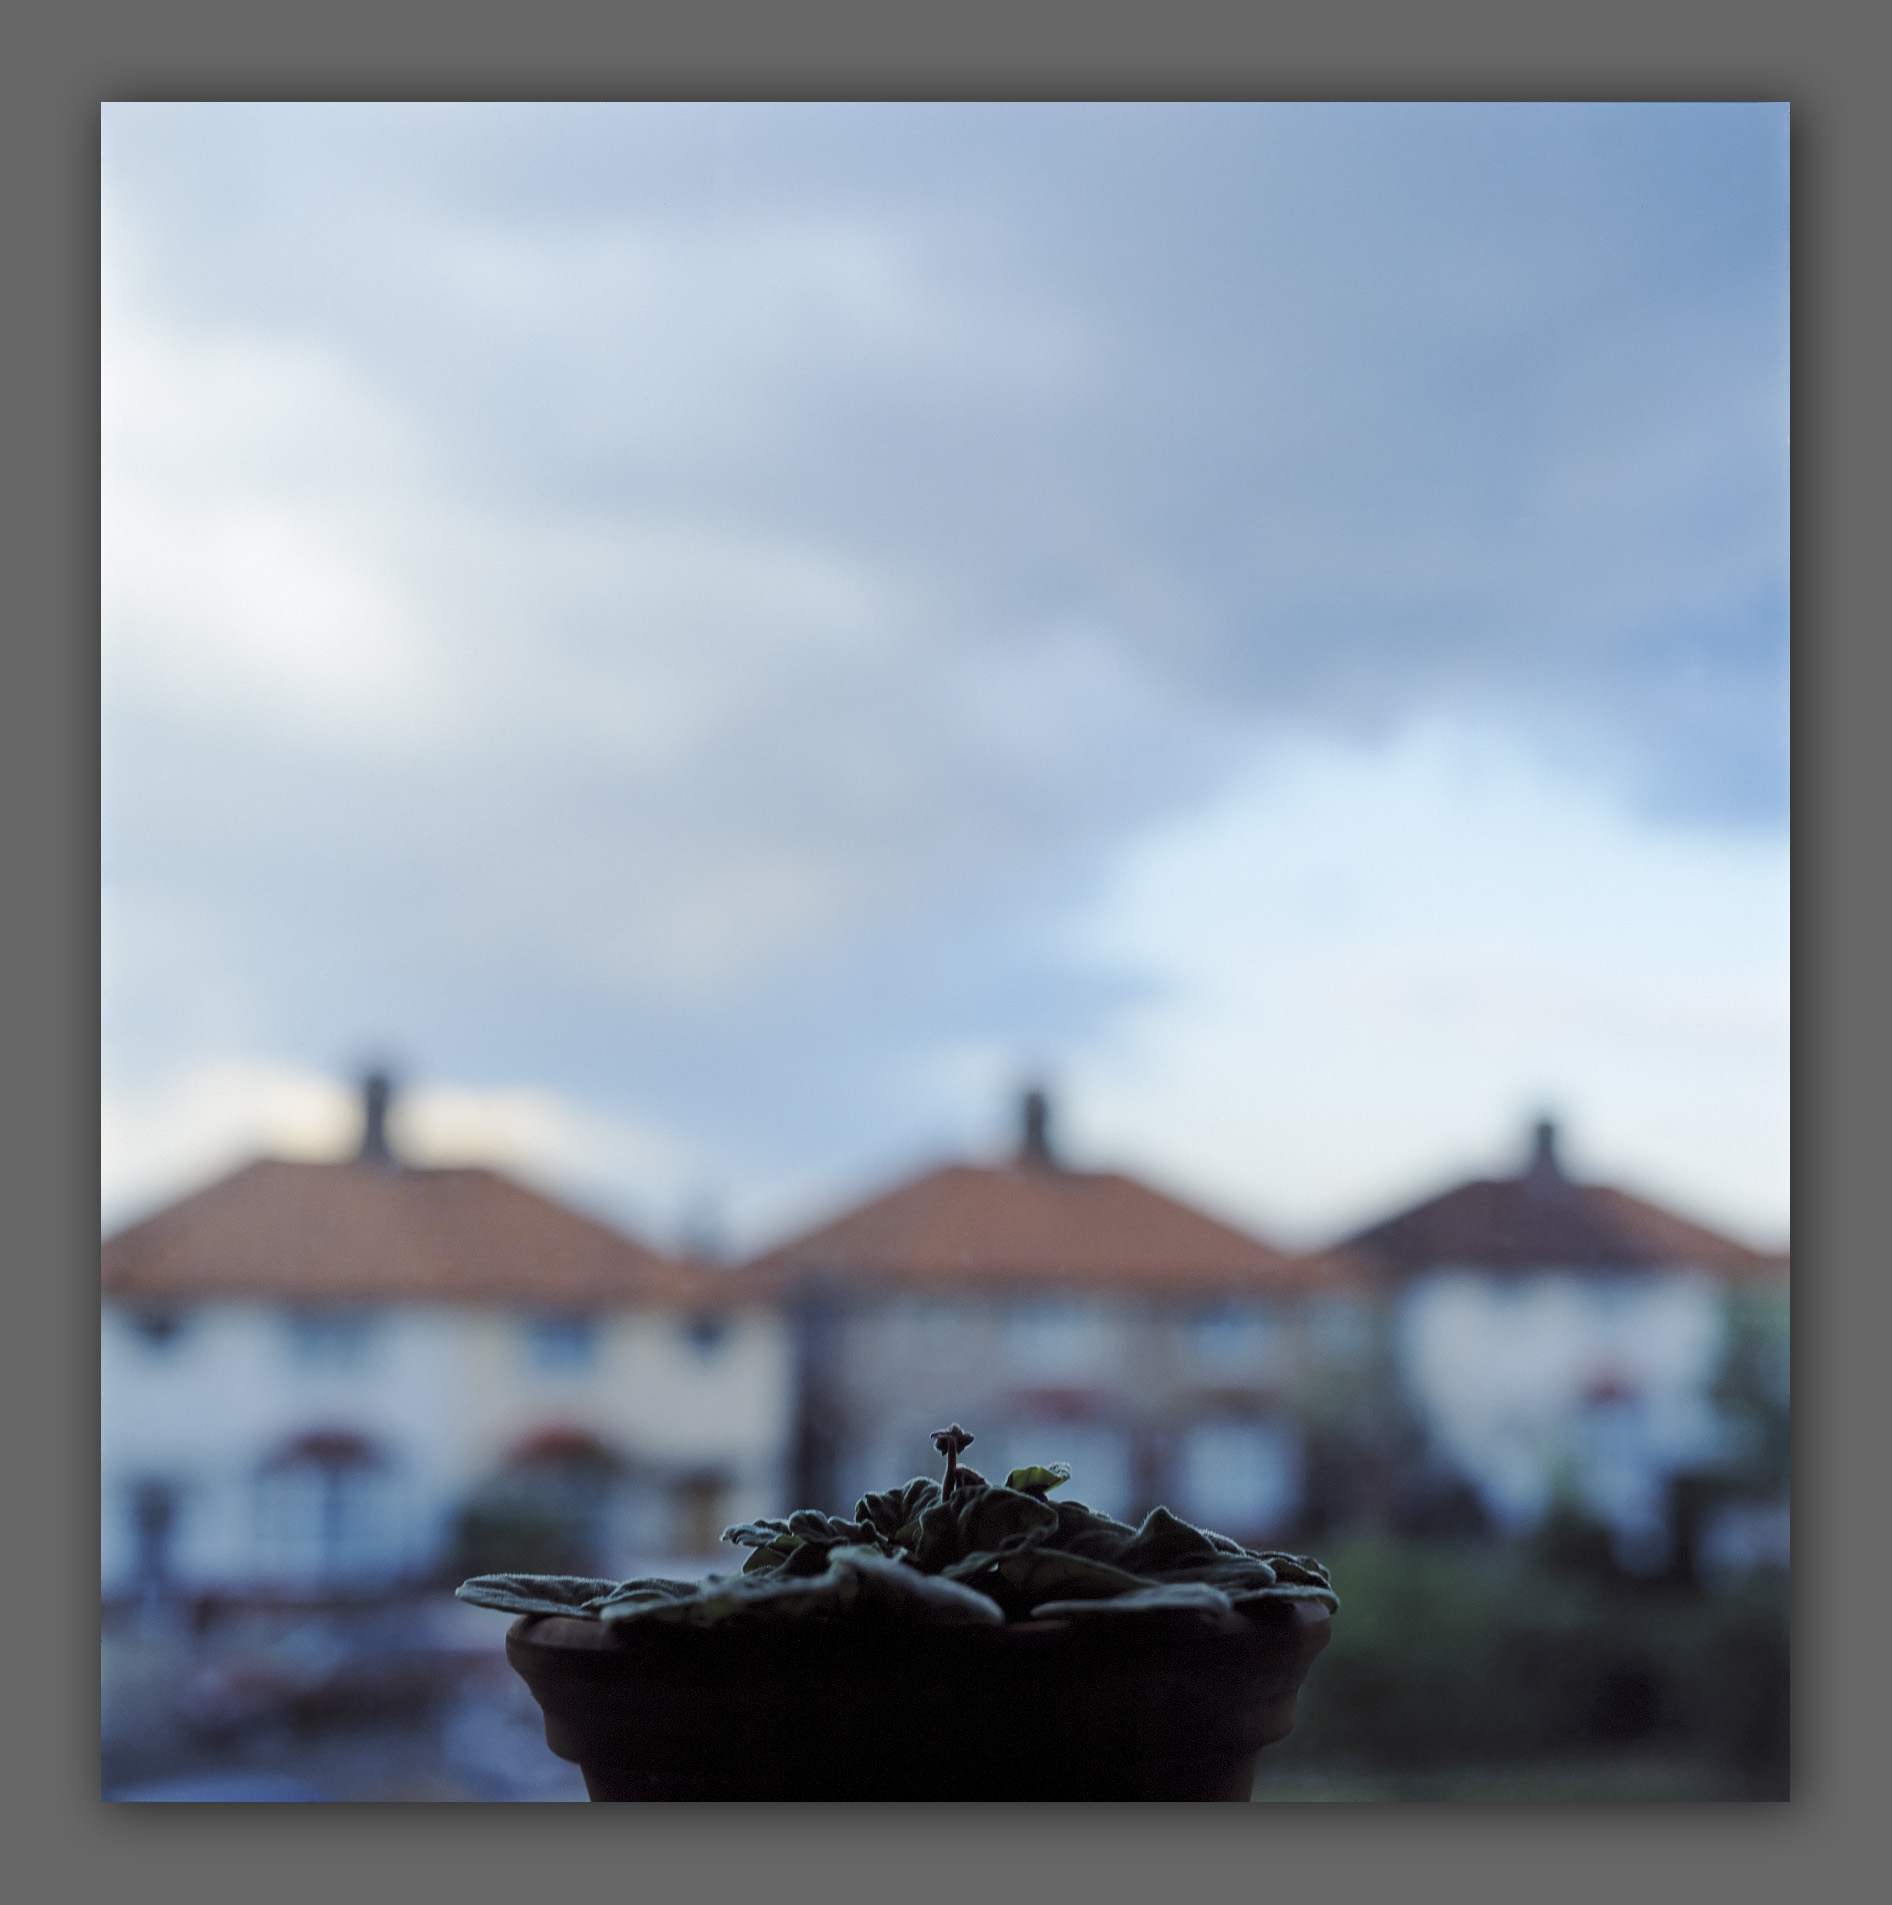 """Window with plant pot - from the """"Home"""" series"""